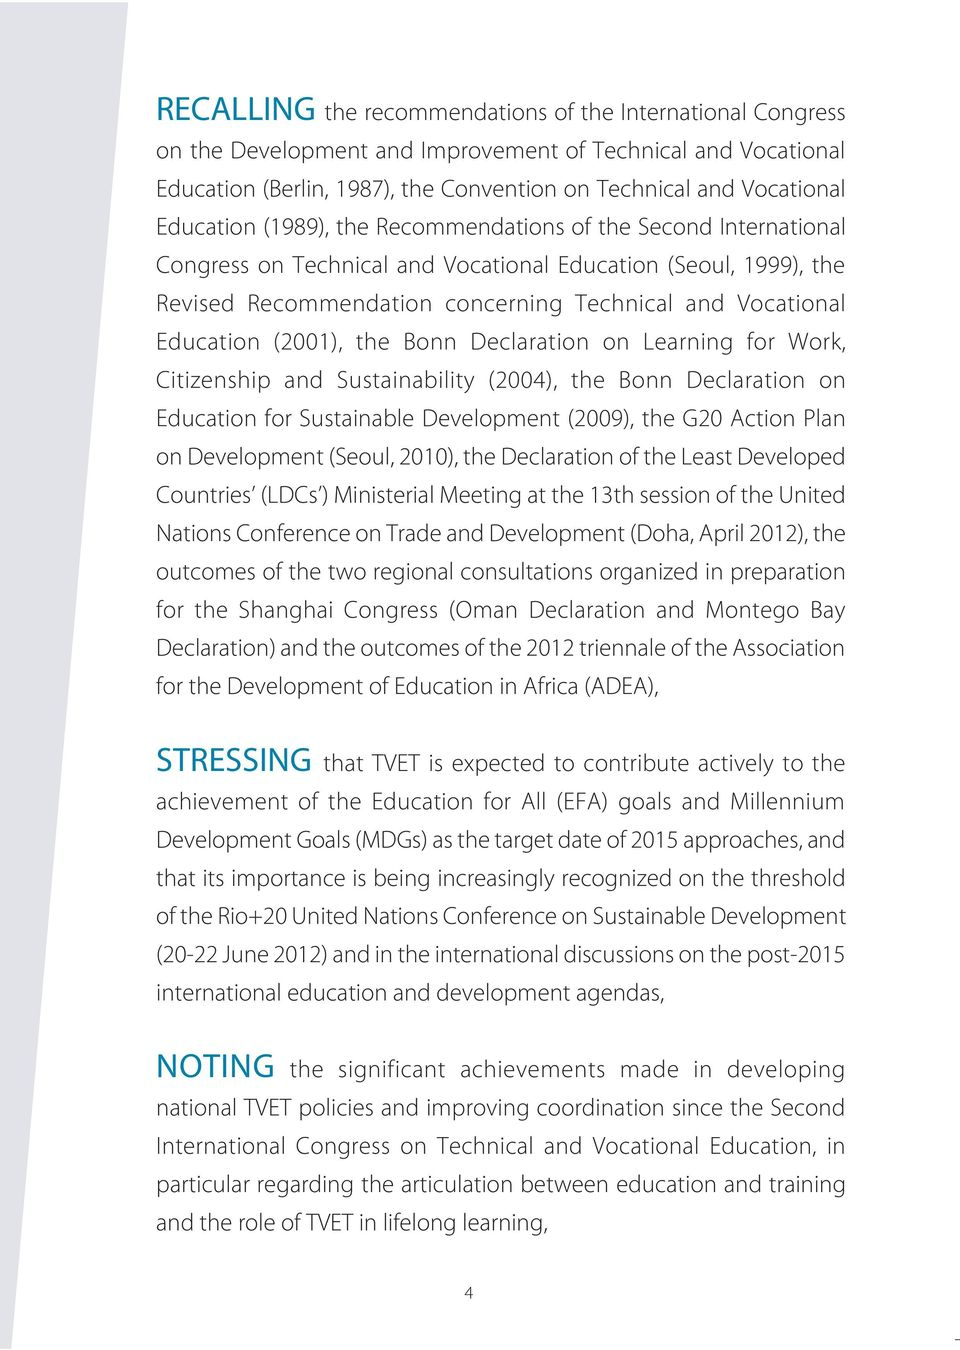 Education (2001), the Bonn Declaration on Learning for Work, Citizenship and Sustainability (2004), the Bonn Declaration on Education for Sustainable Development (2009), the G20 Action Plan on